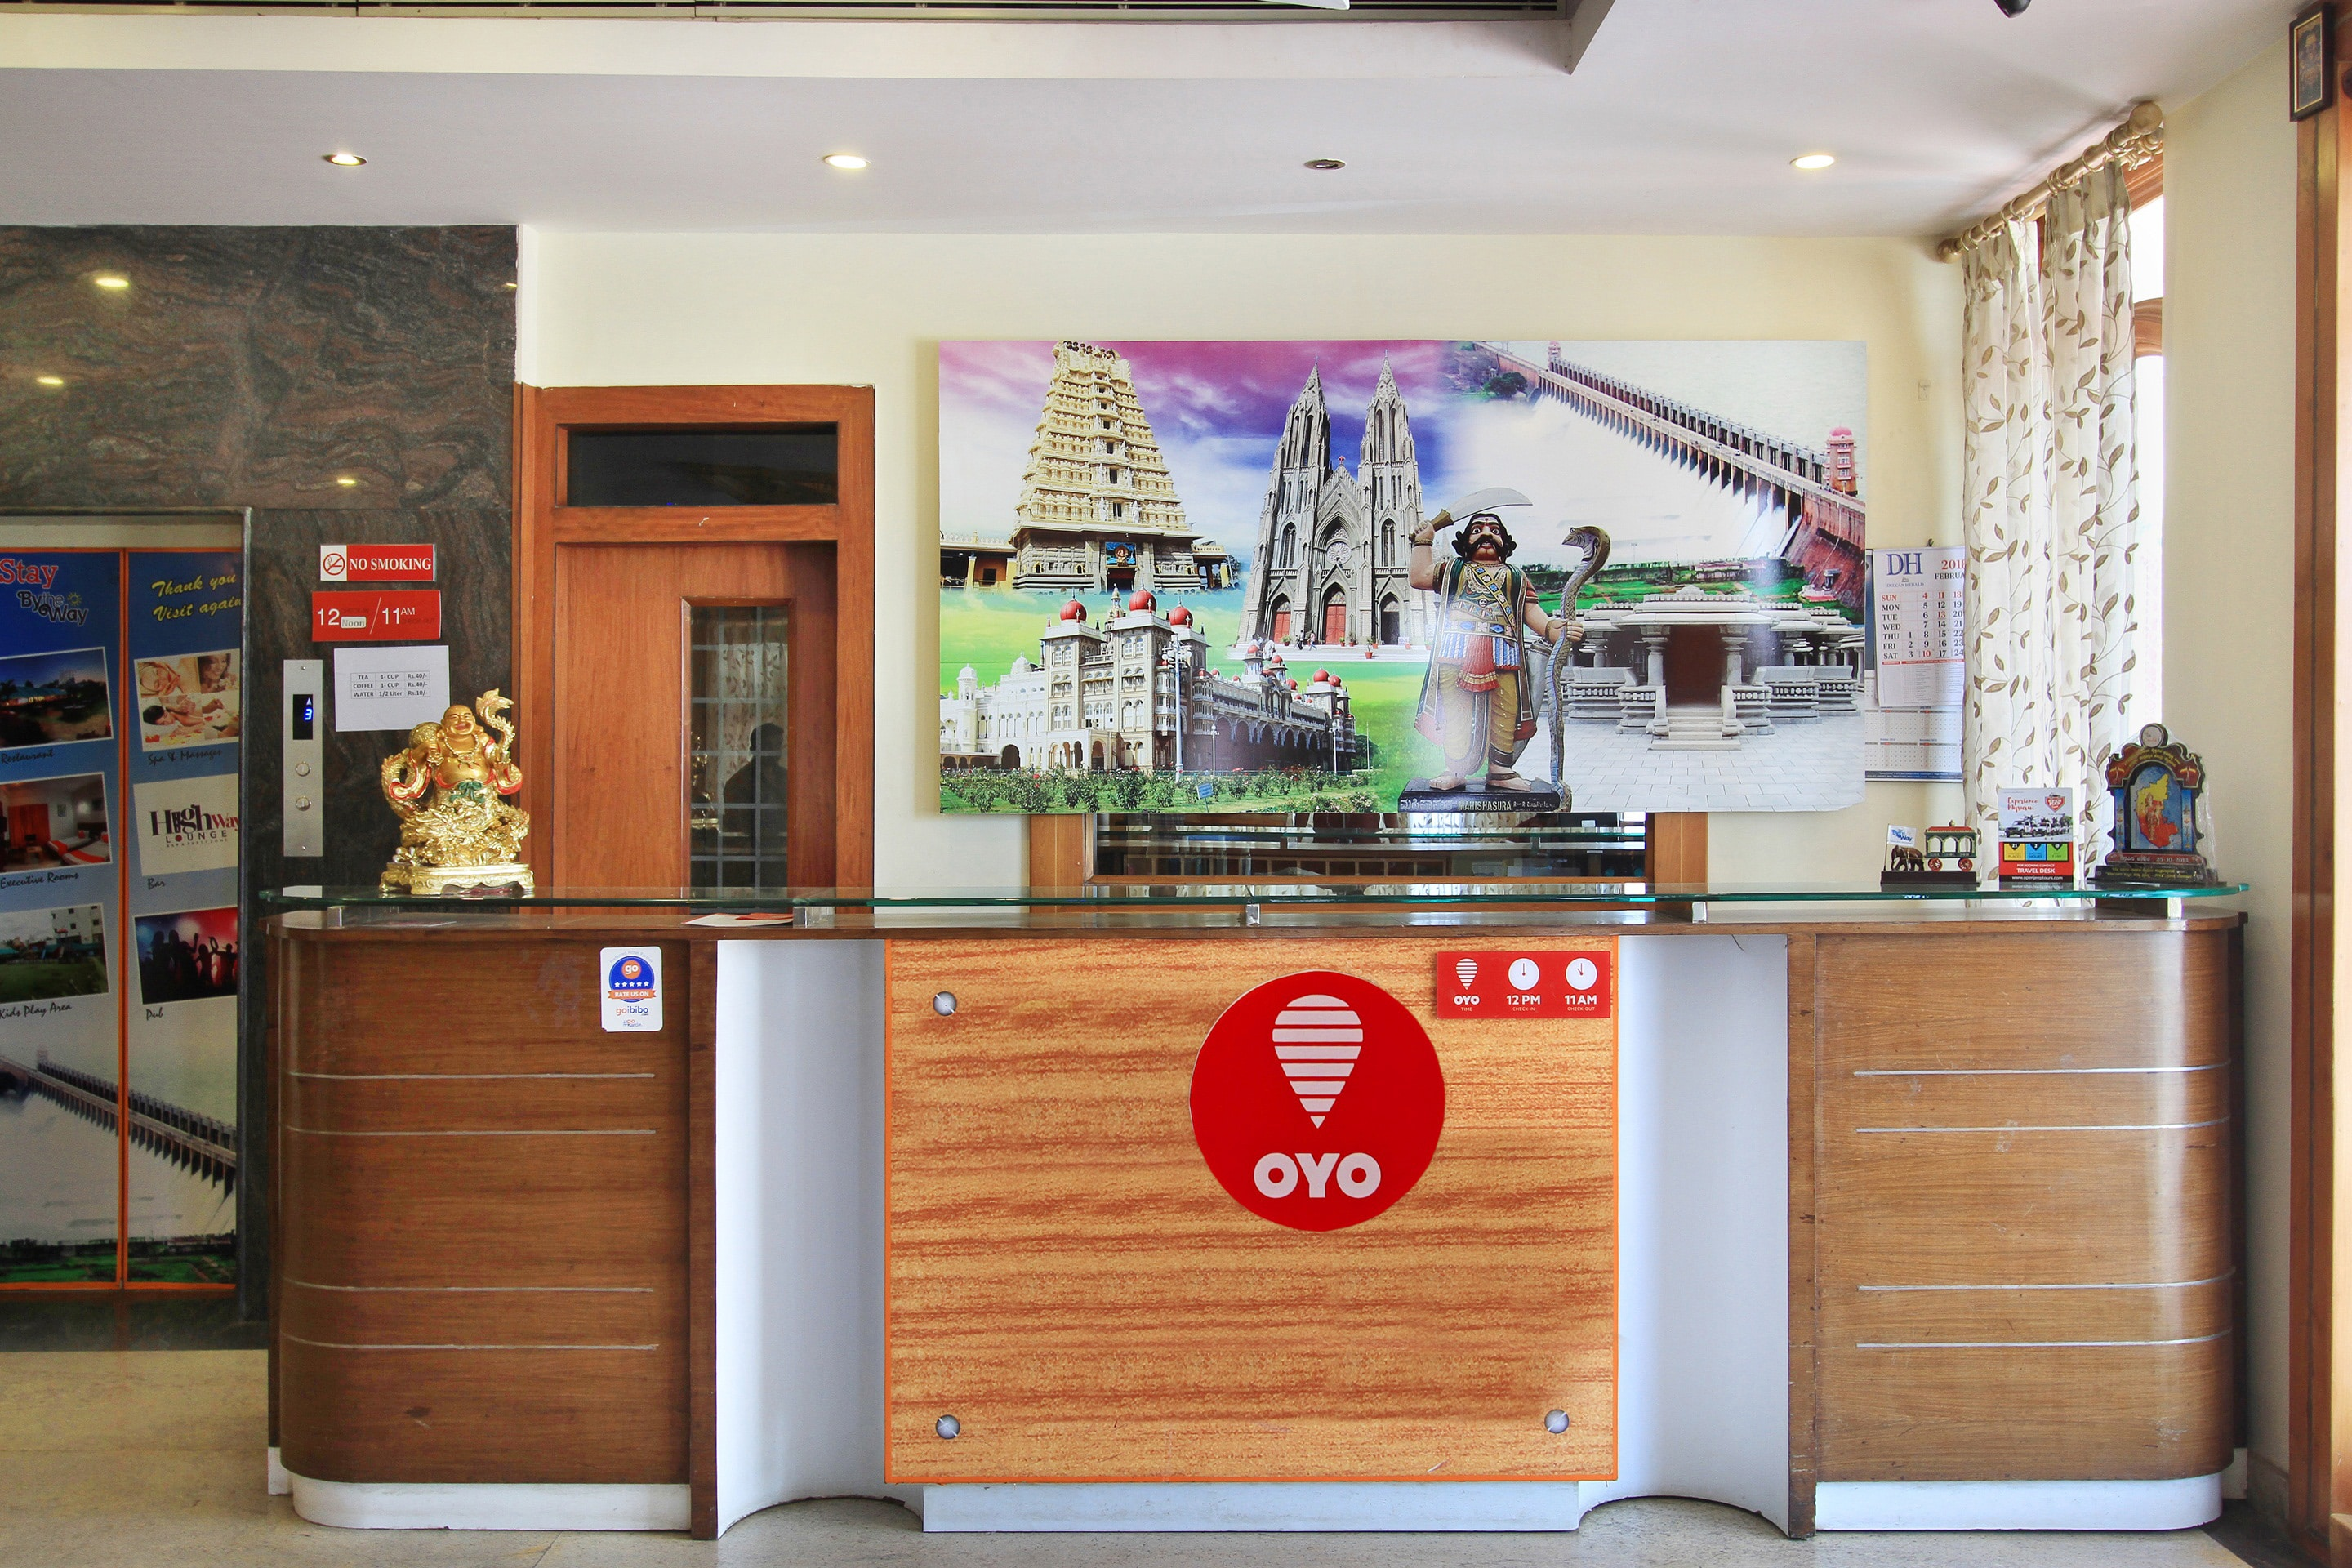 Oyo 12051 Stay By The Way Mysore- Updated Photos, Reviews